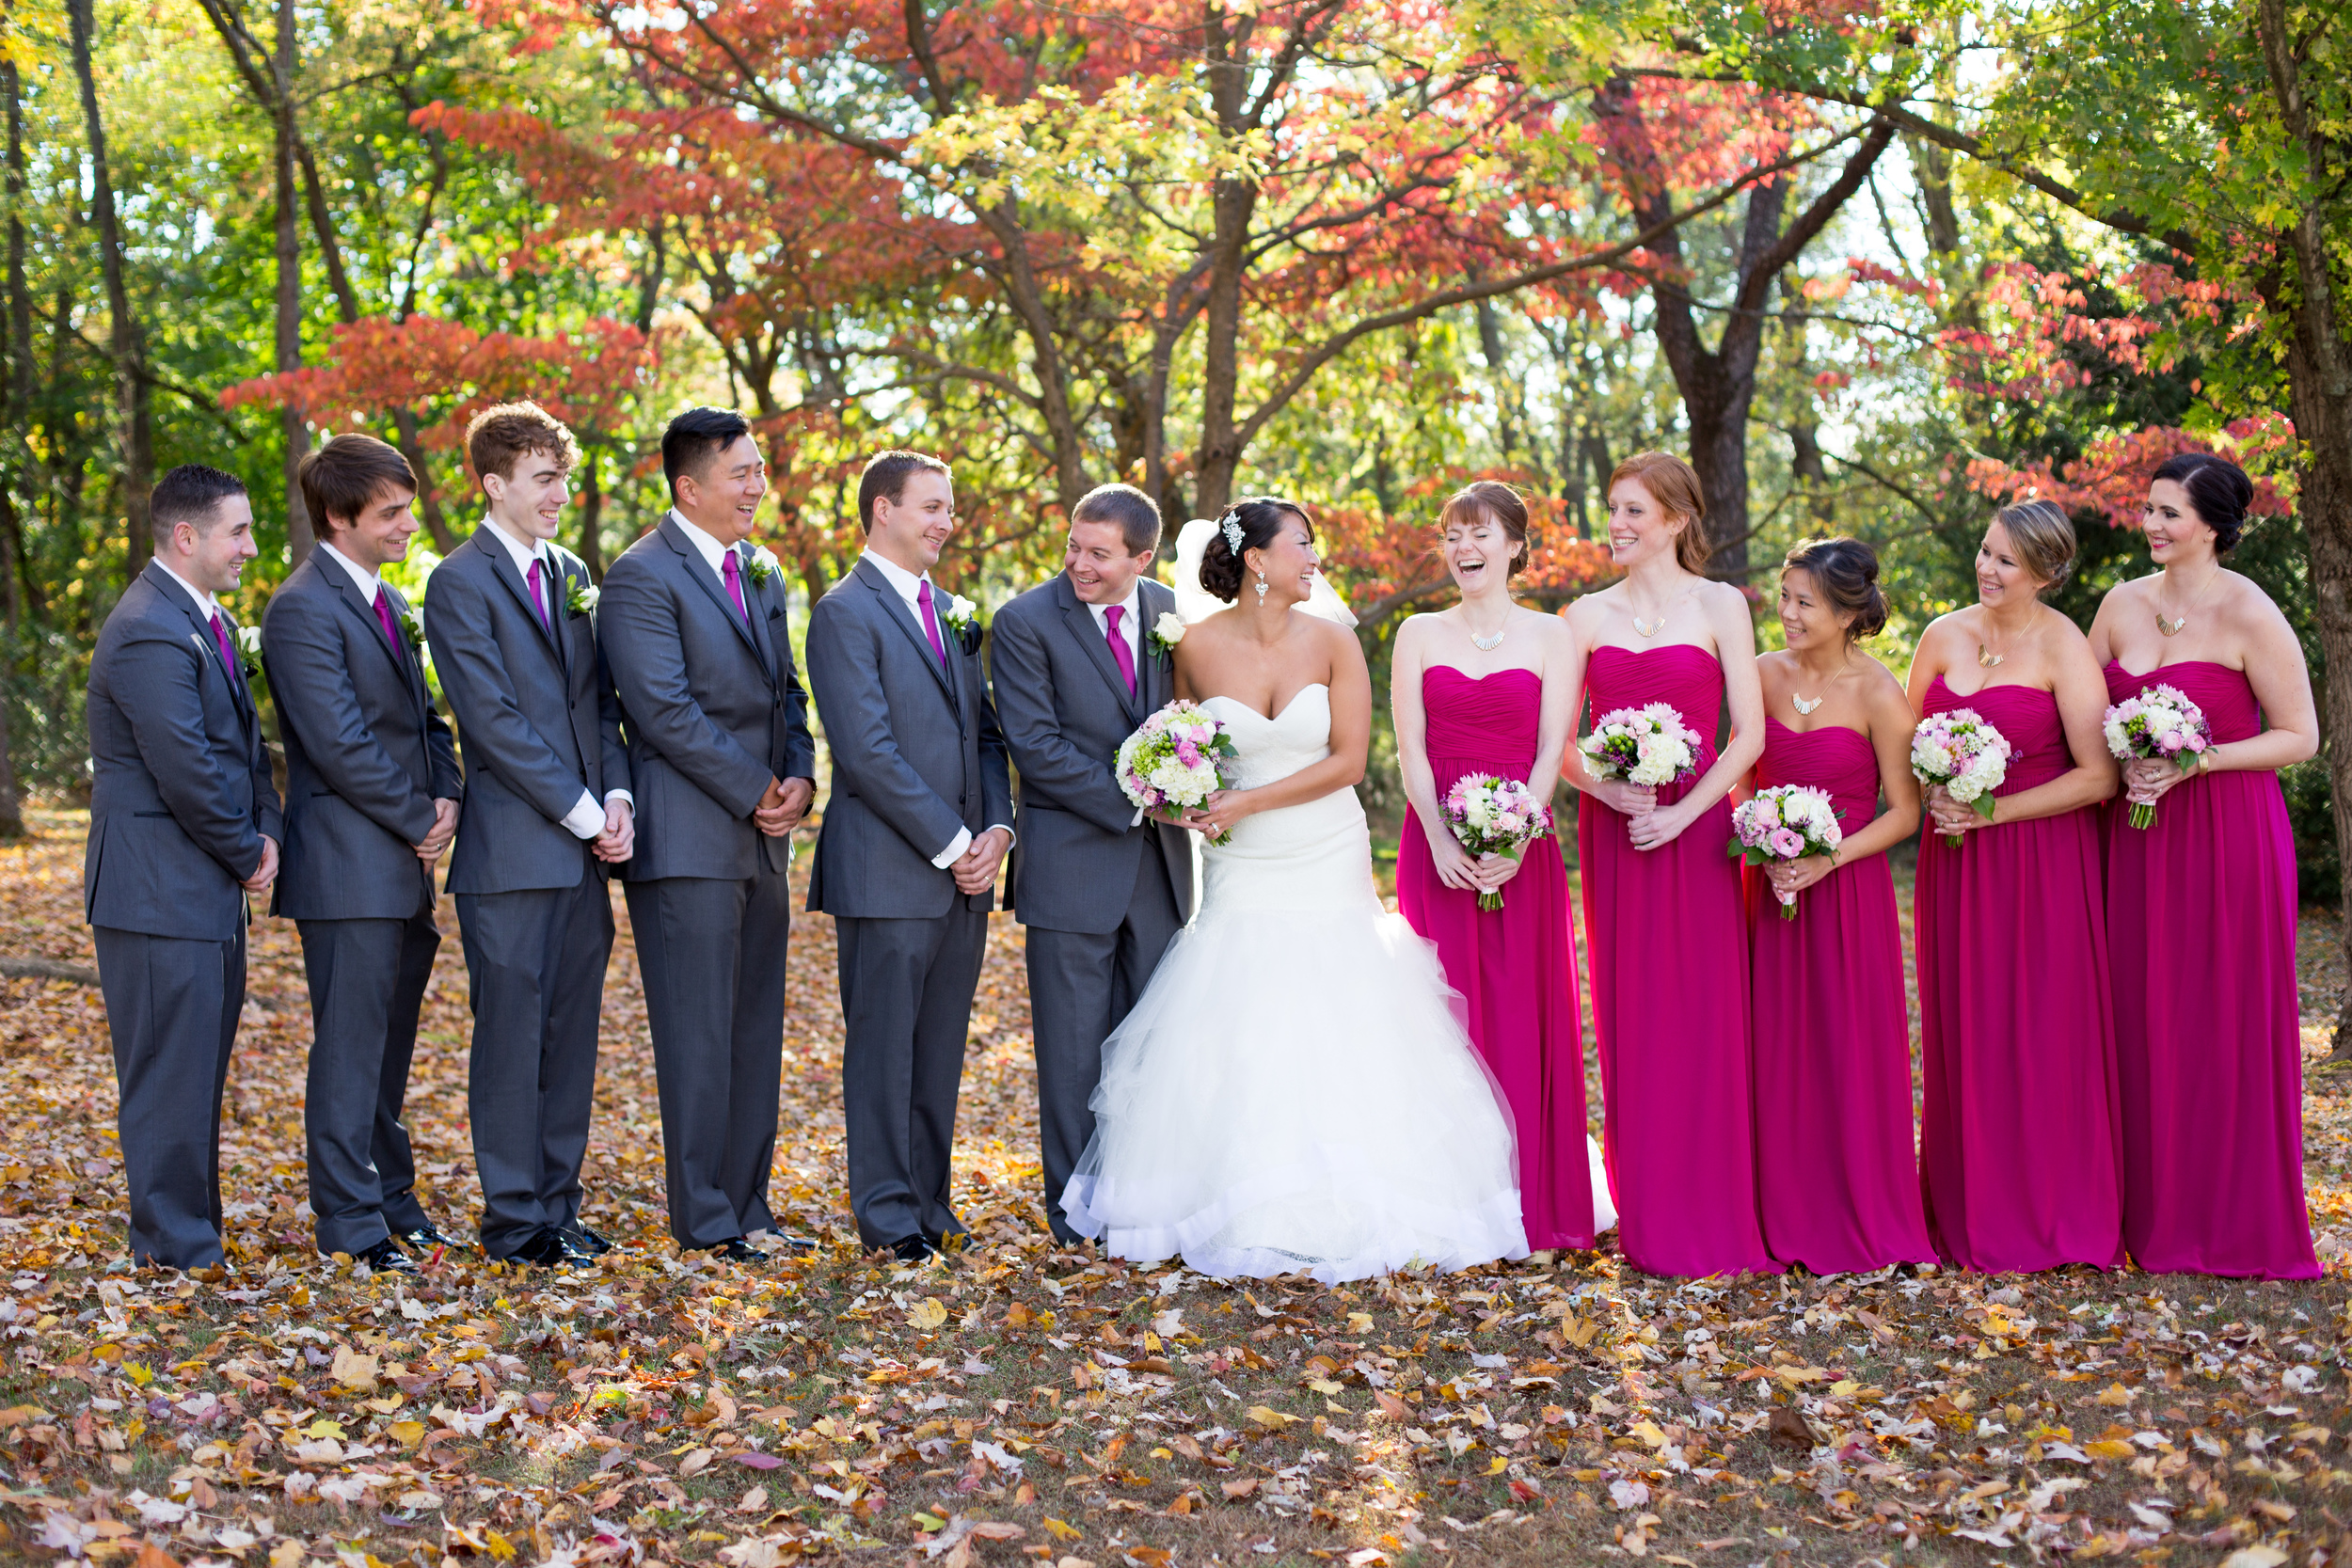 Fall NJ Wedding New Jersey Wedding Photography Pink Bridesmaids Dresses